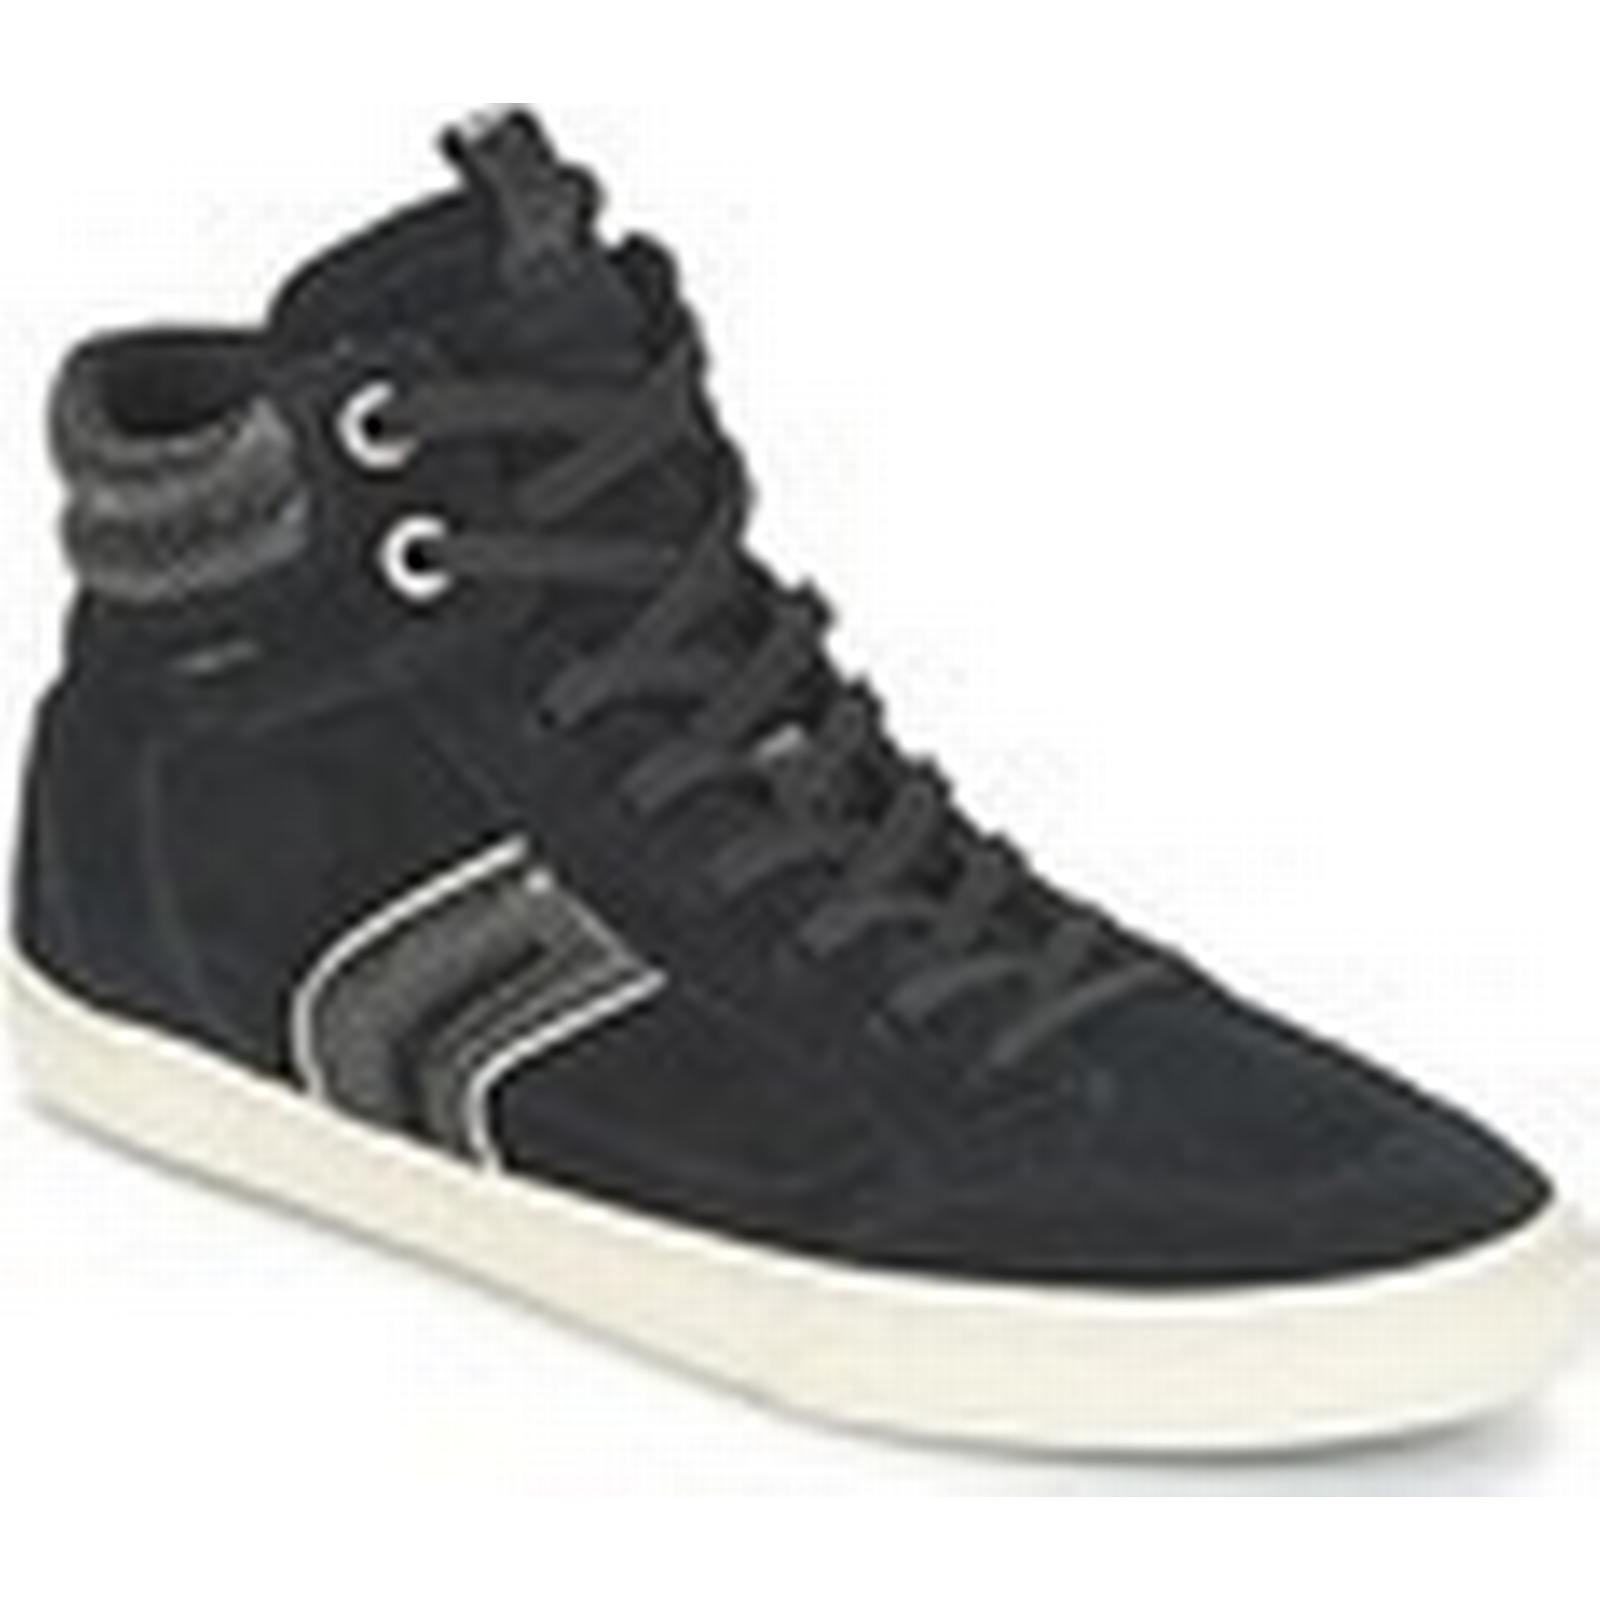 Geox  D NEW CLUB  women's Shoes (High-top Trainers) in in Trainers) Black 4cd337